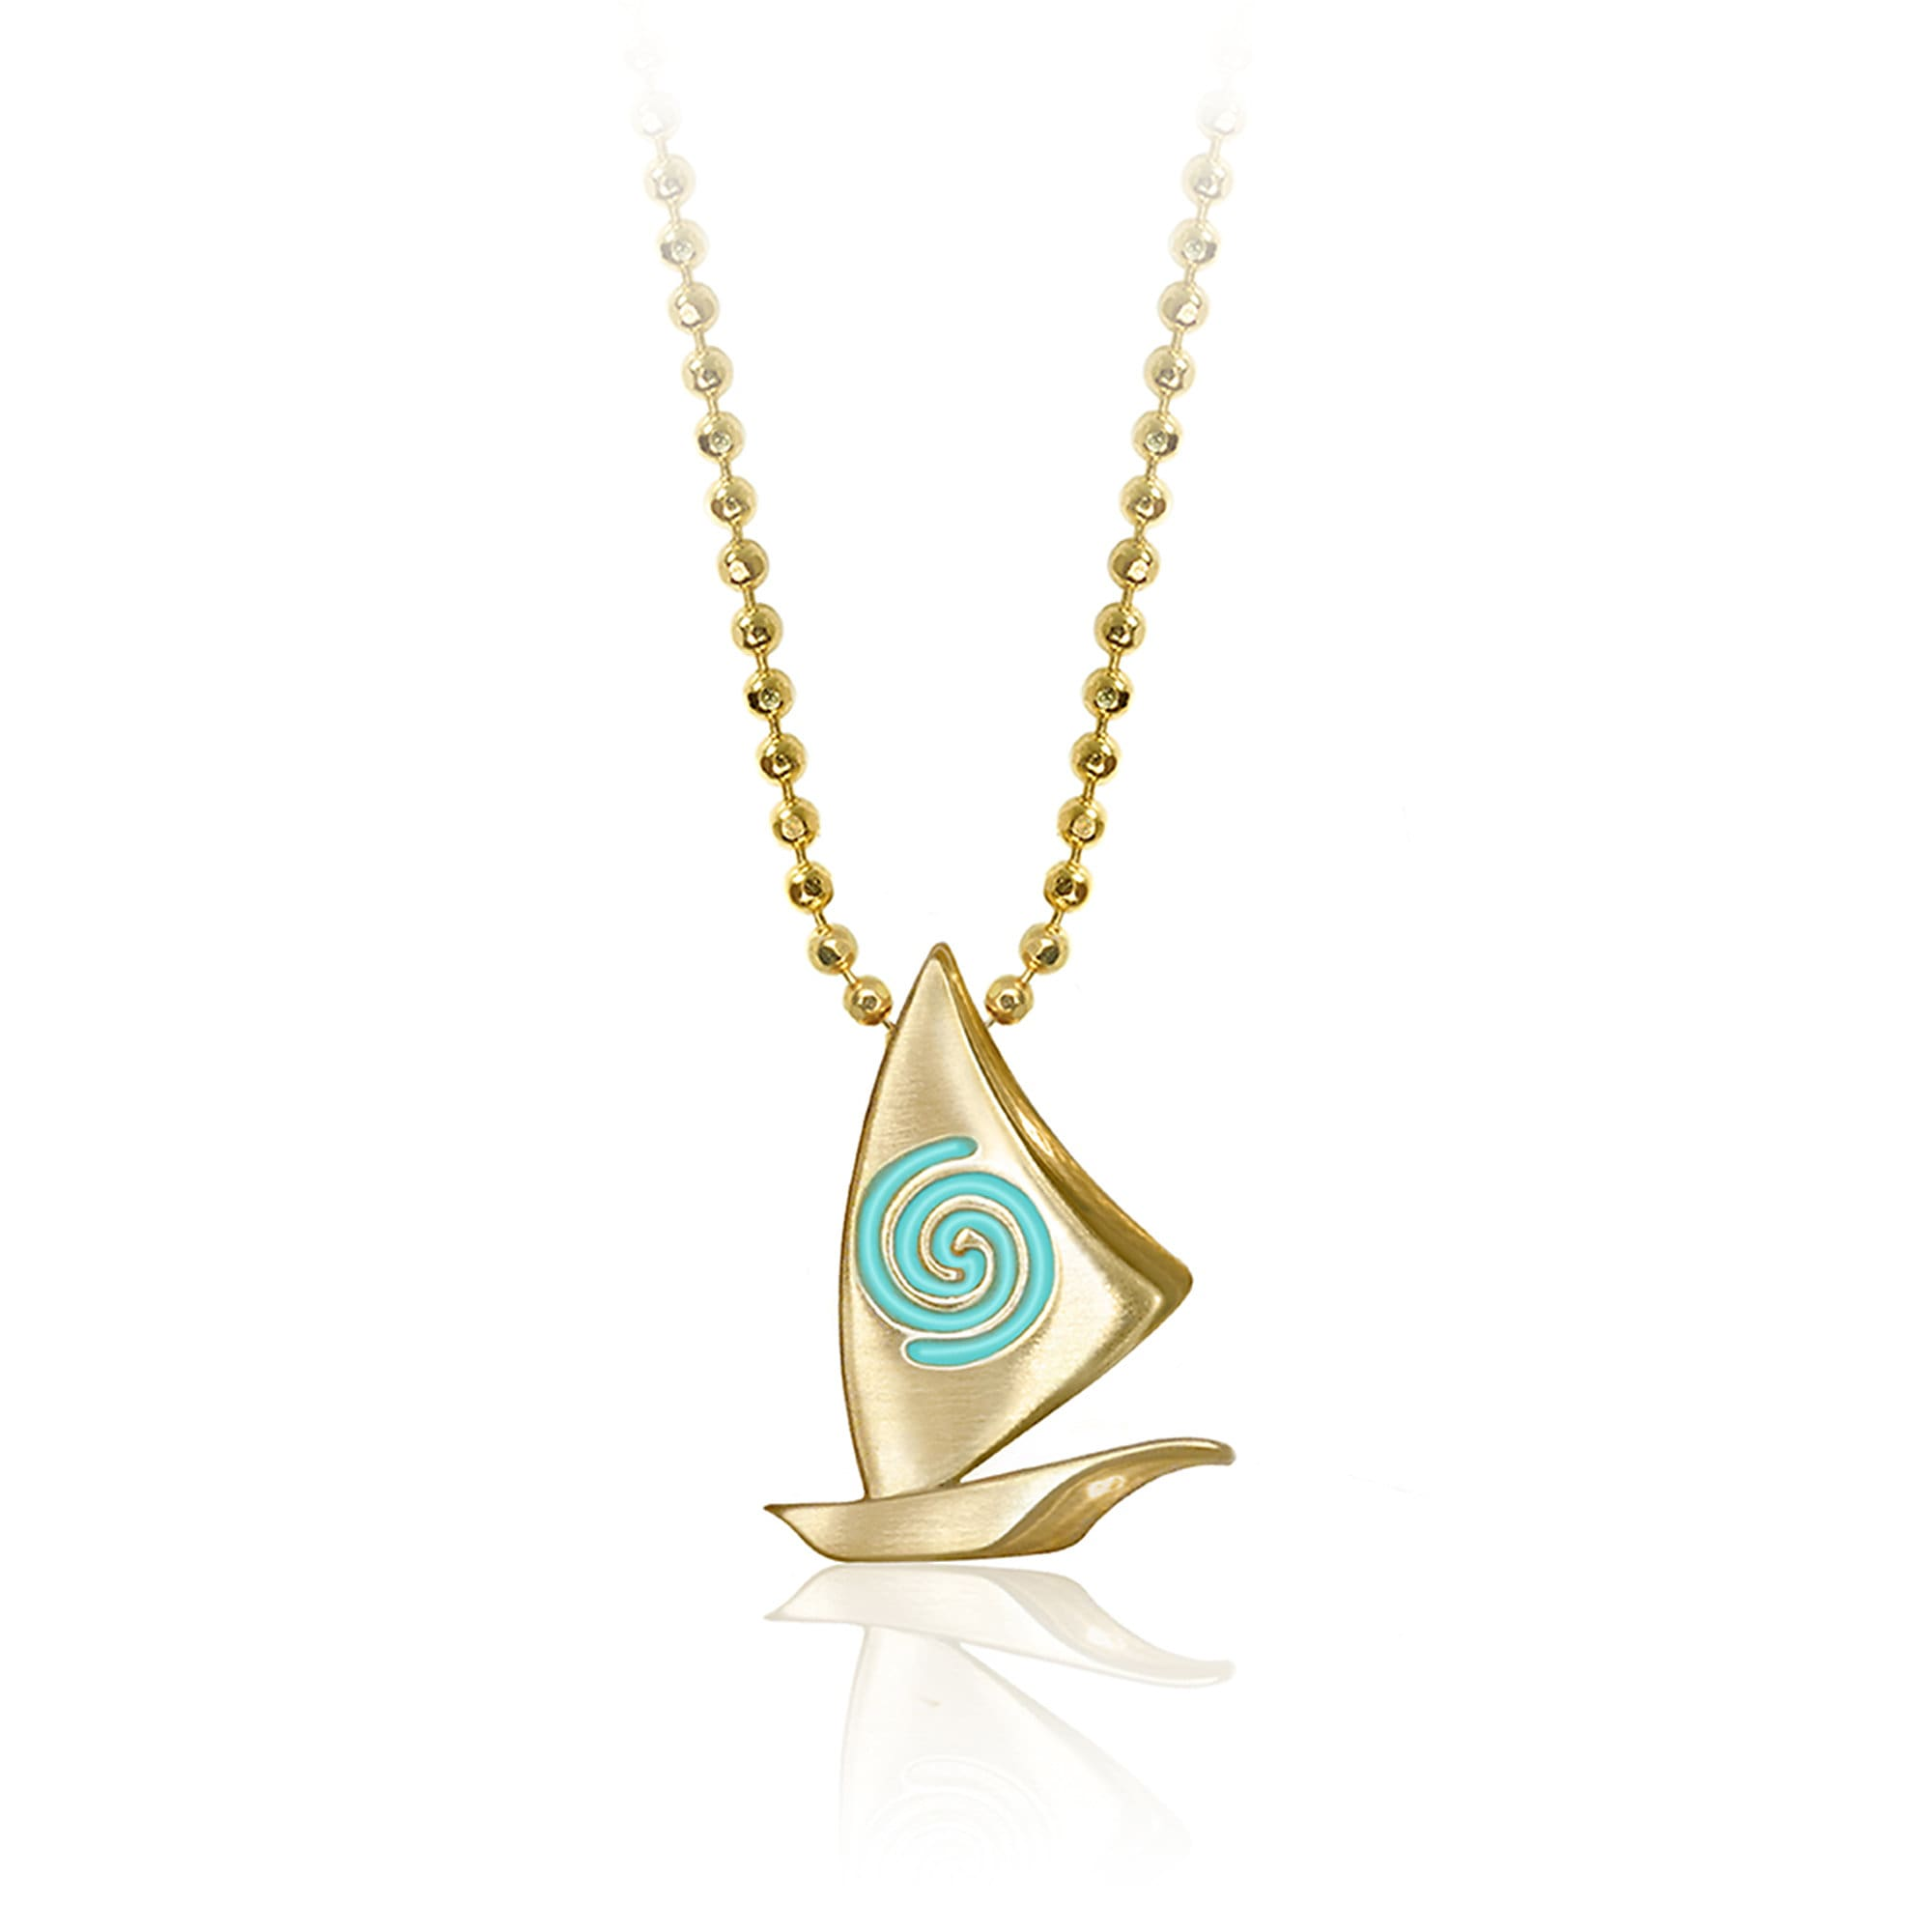 Moana 14 Karat Gold Necklace by Alex Woo